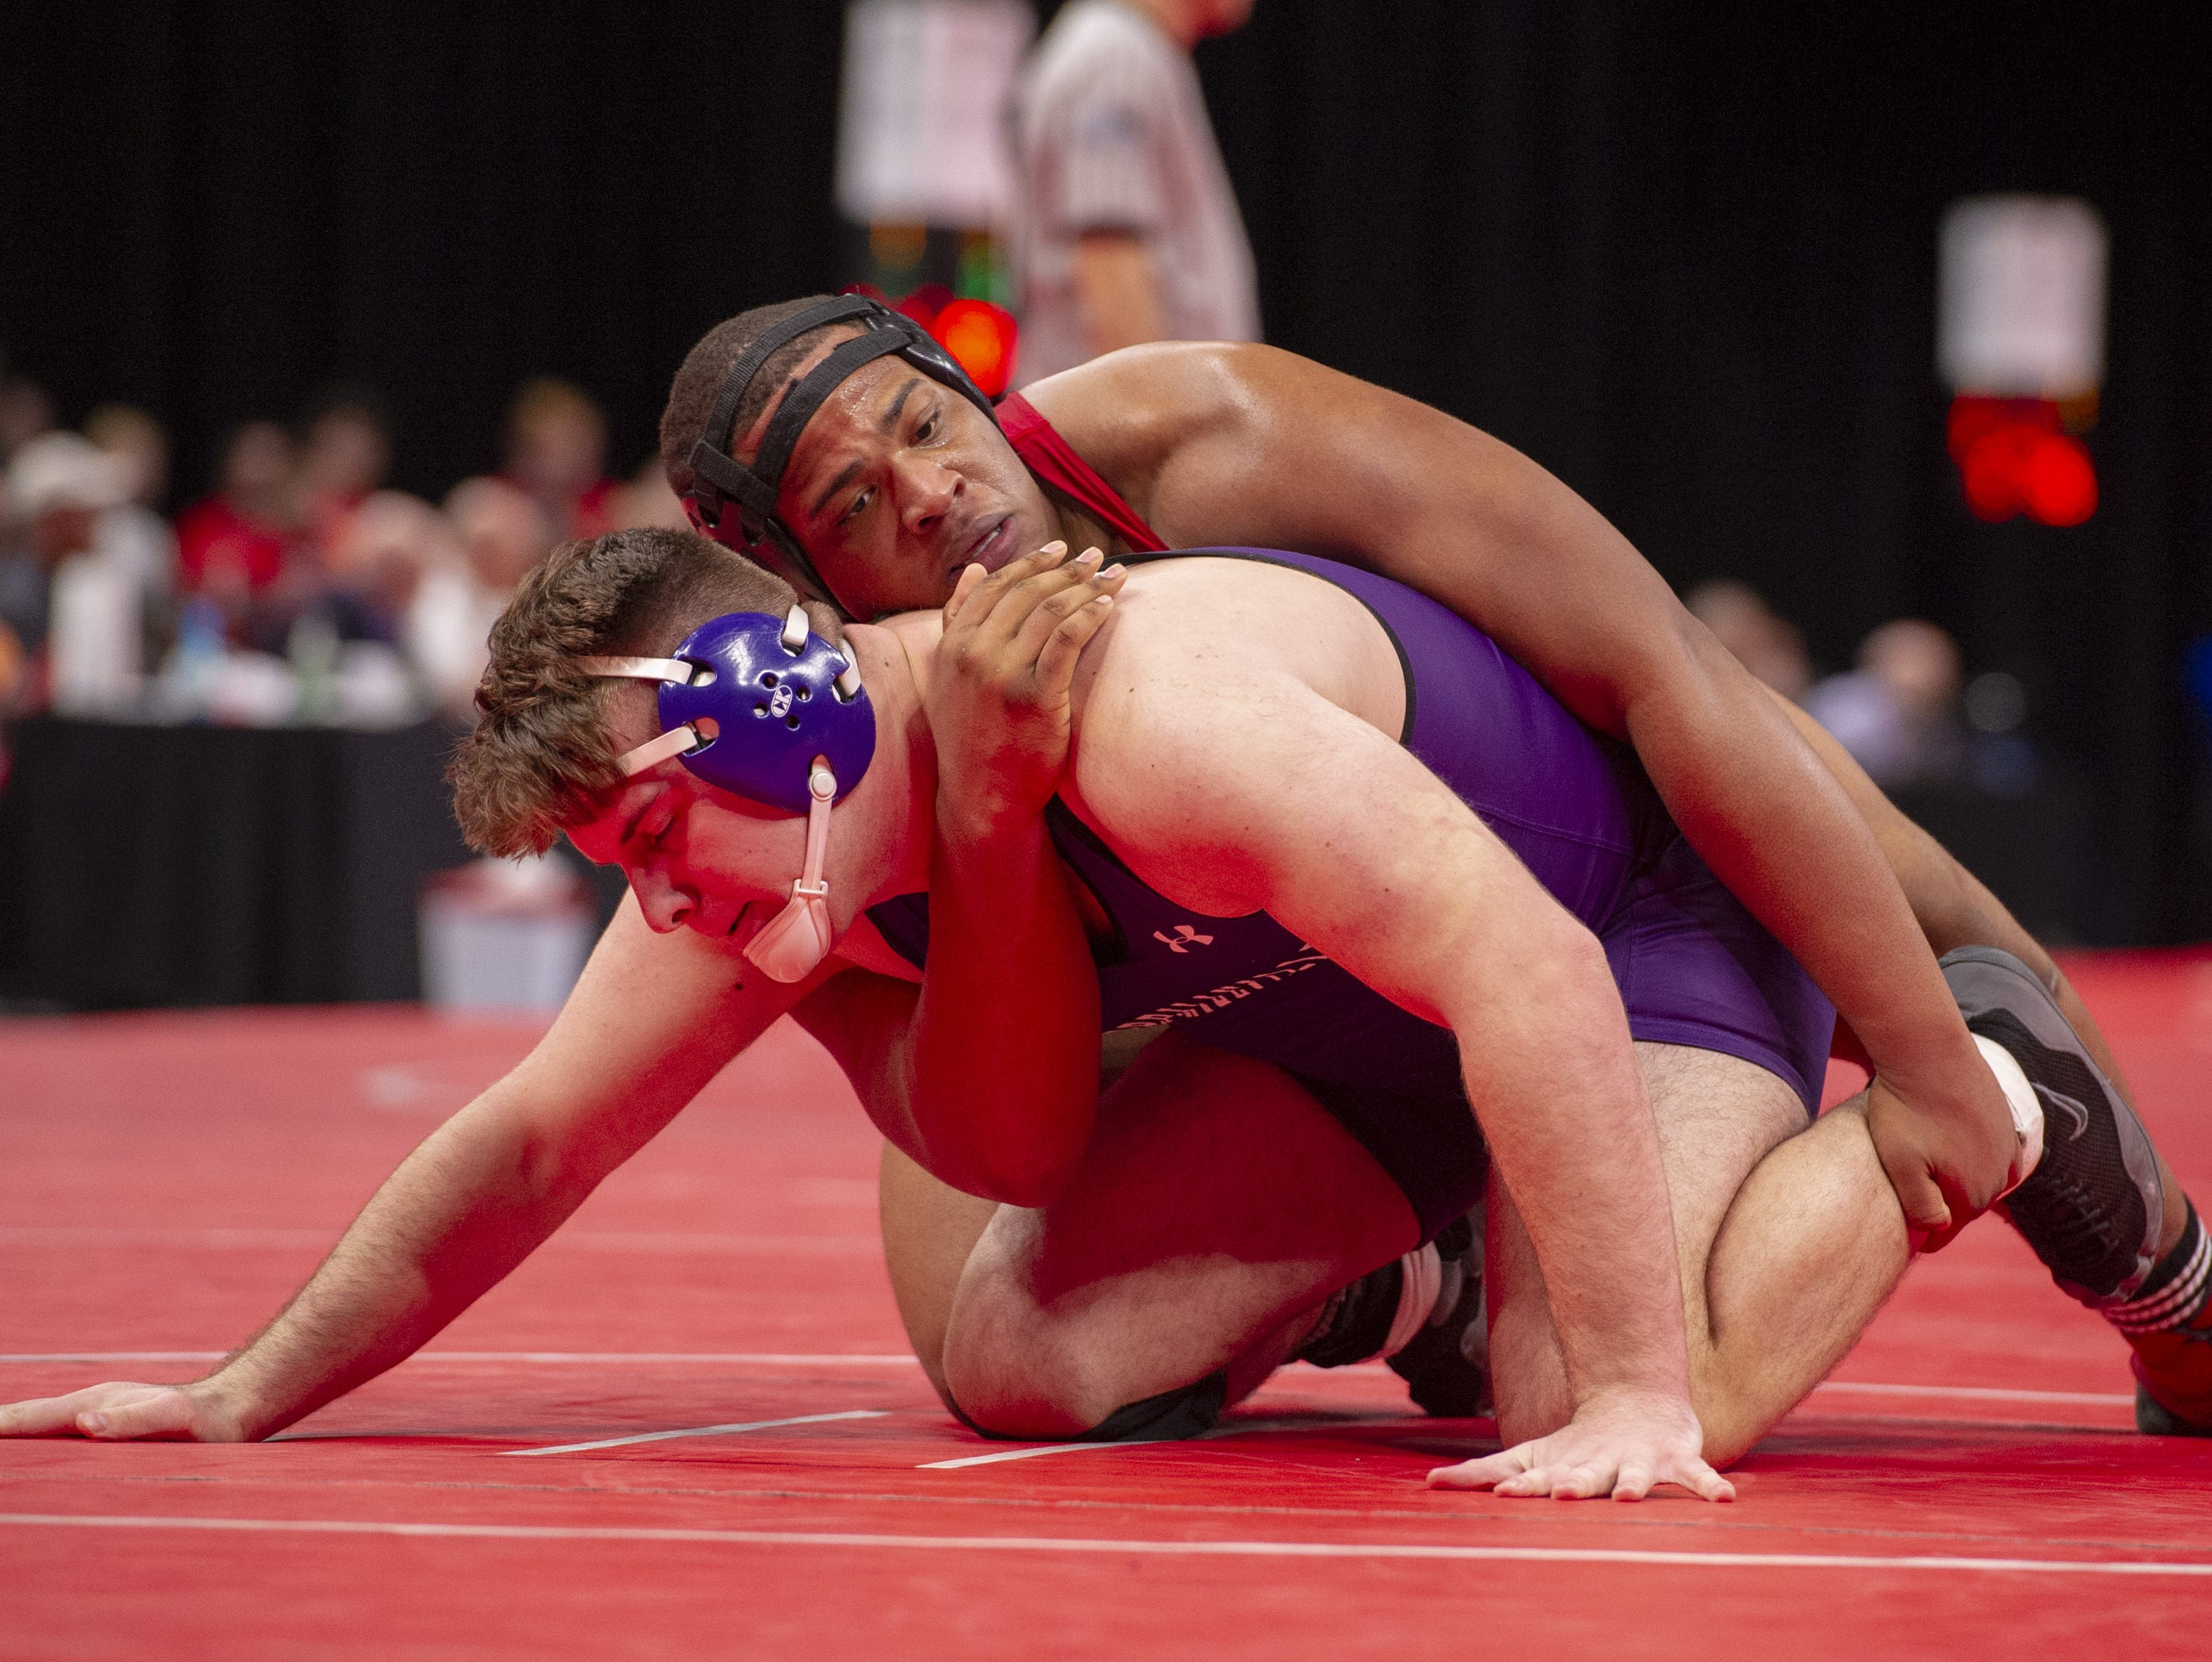 North Central High School wrestler Jamichael Watts, top, wrestles Merrillville High School wrestler Anthony Atria in the 285-pound weight class during the first day of competition in the 81st Annual IHSAA Wrestling State Finals at Bankers Life Fieldhouse in Indianapolis, Friday, Feb. 15, 2019.